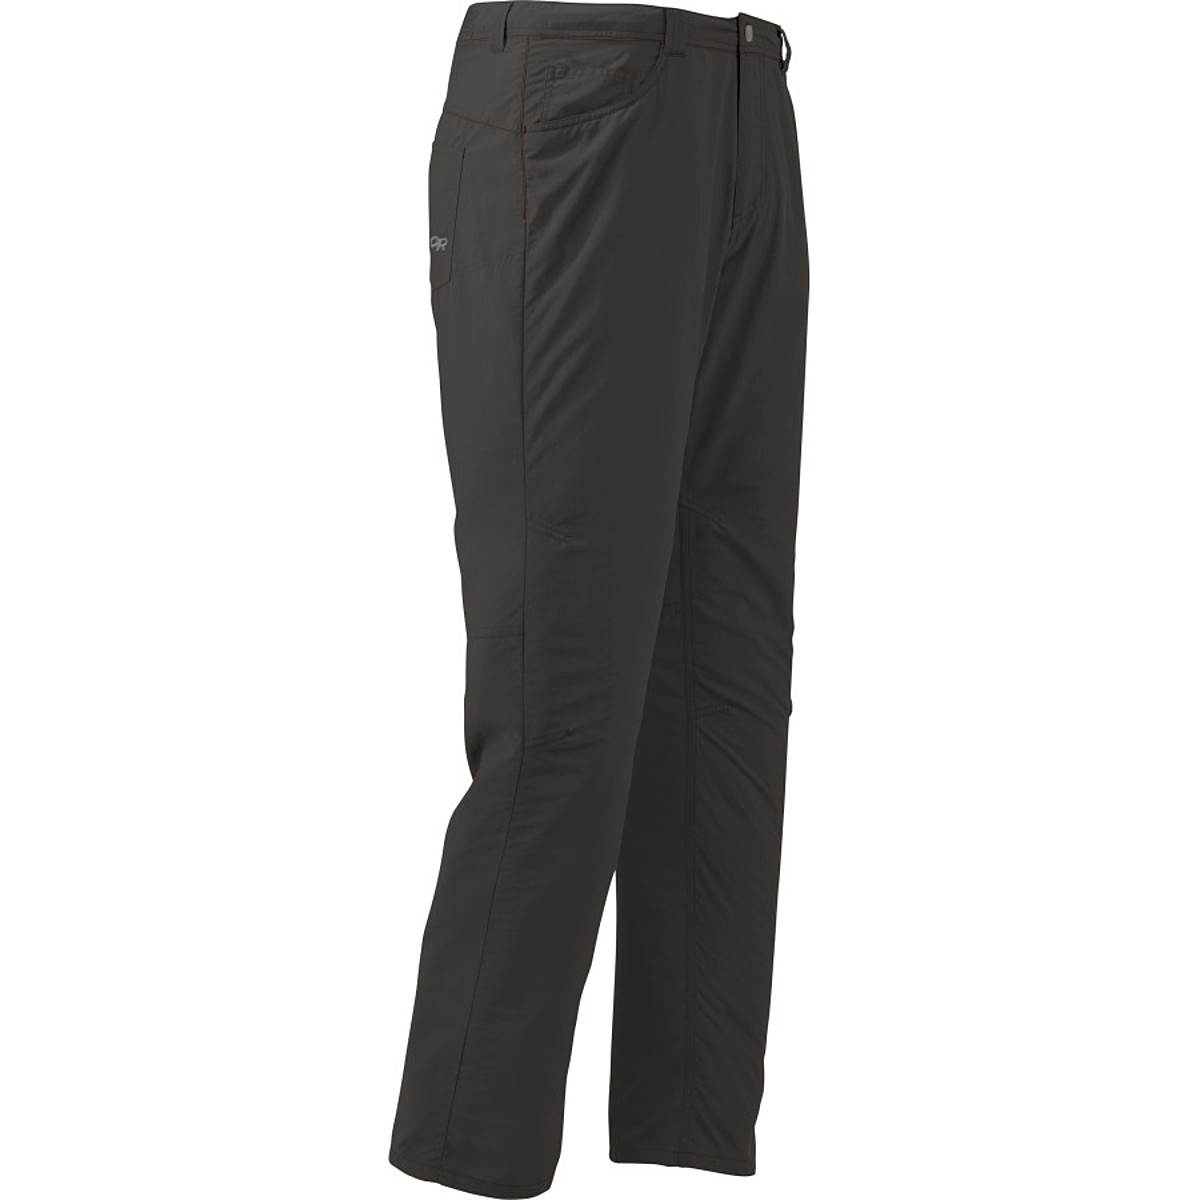 Outdoor Research Treadway Pant